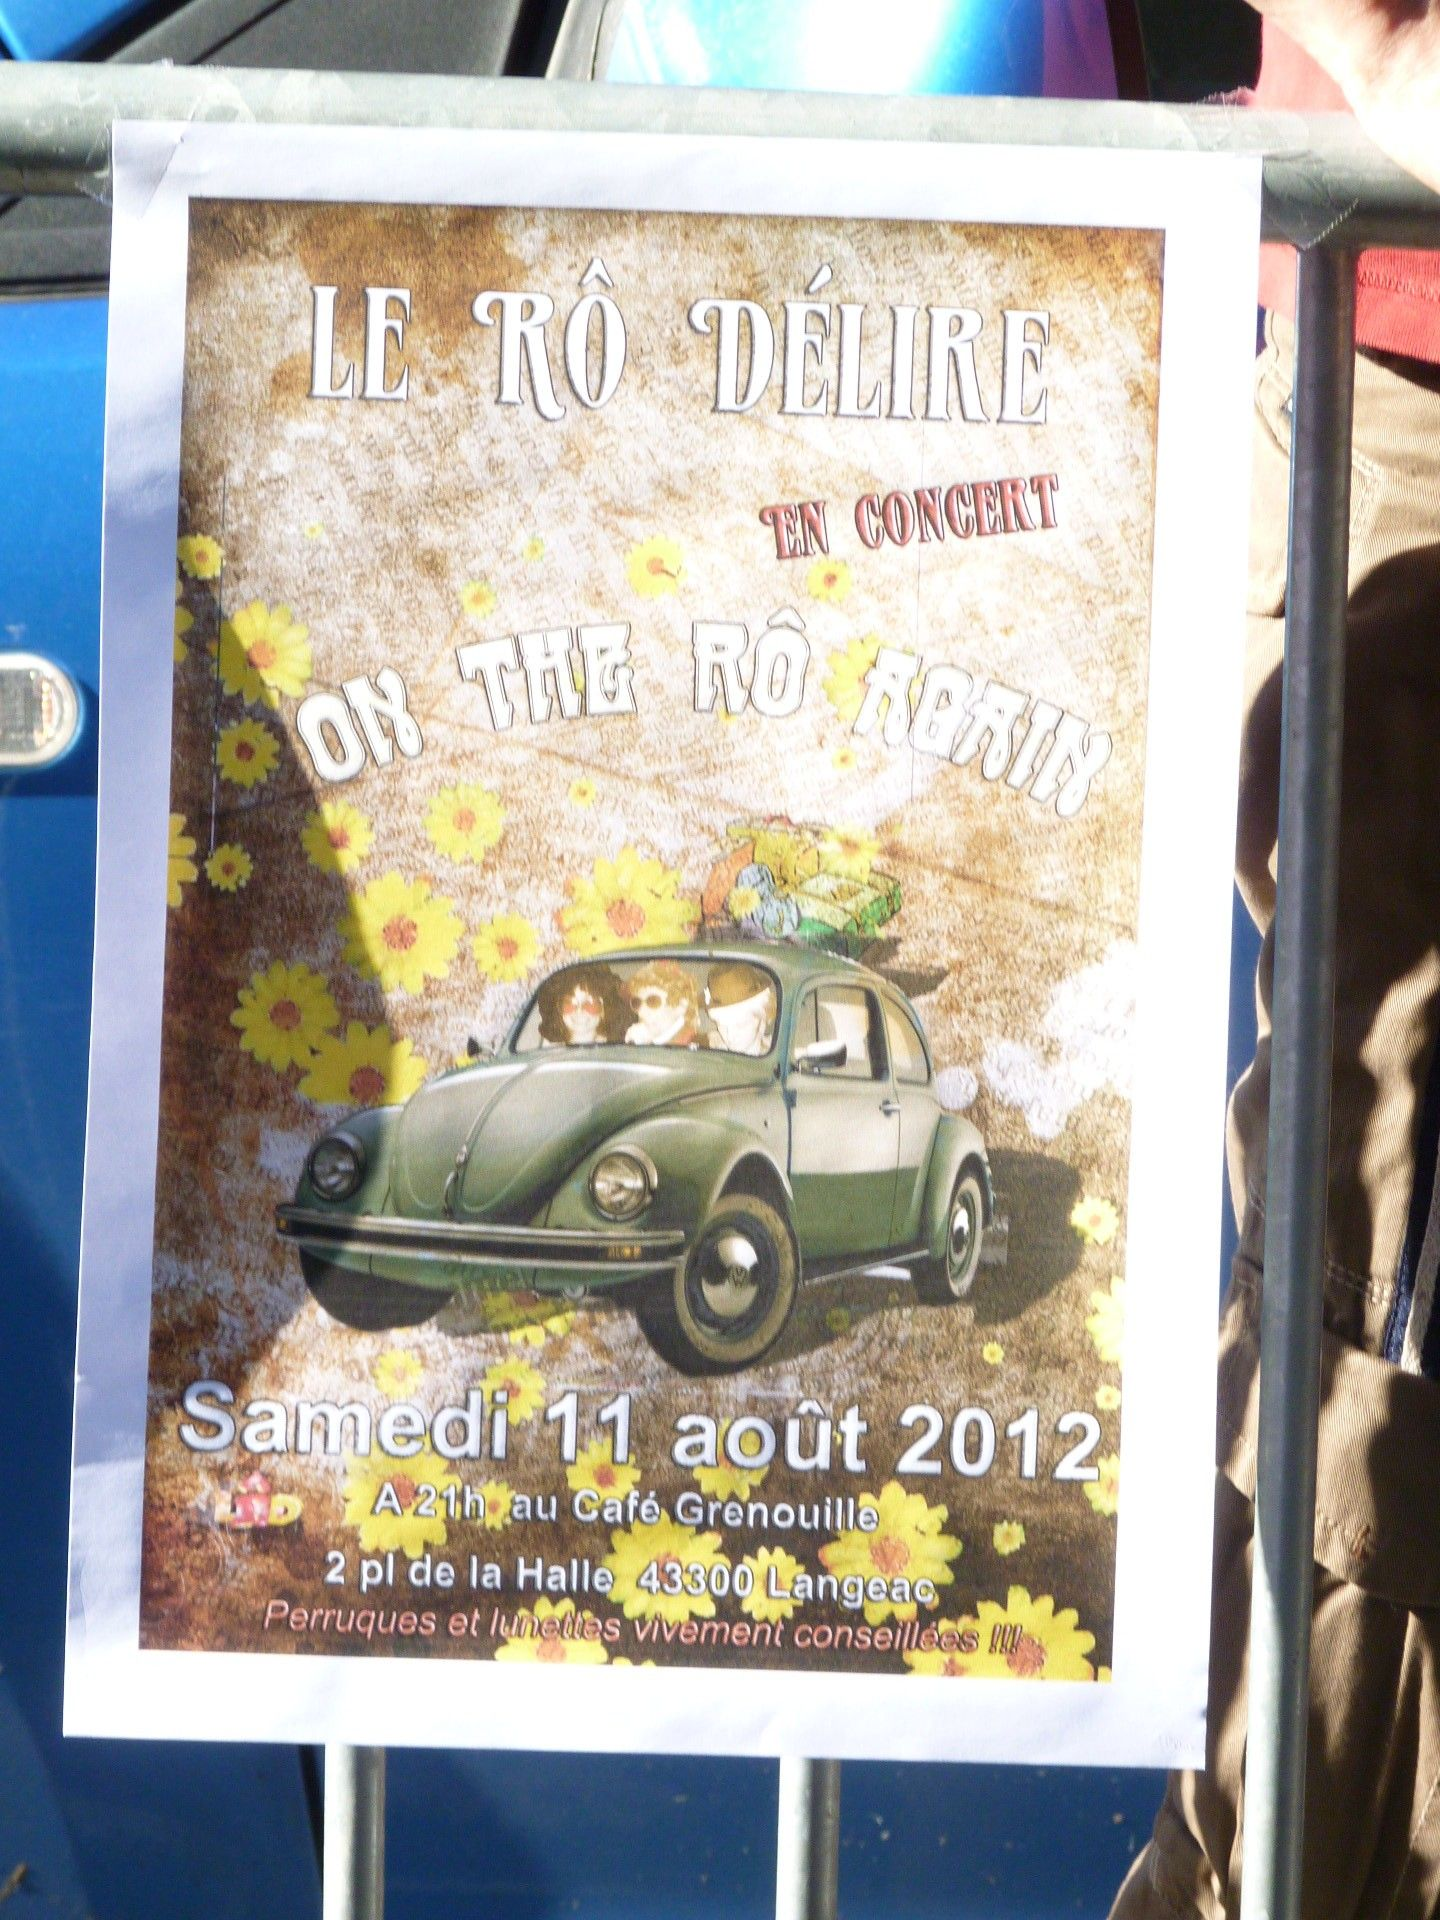 The affiche